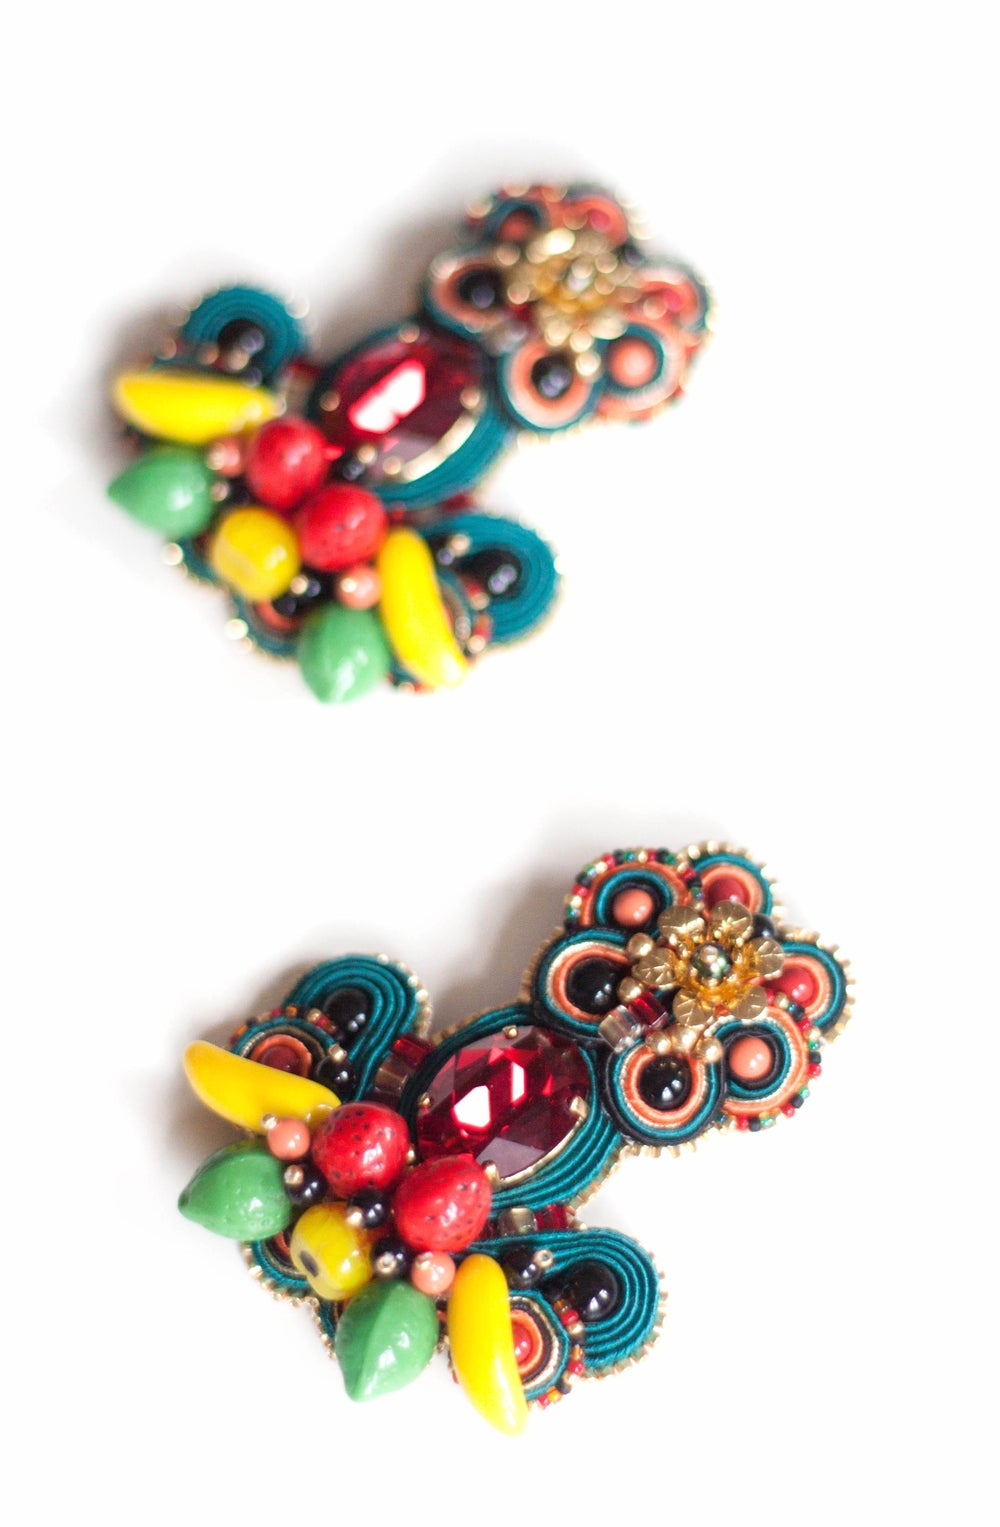 Image of Tribute to Carmen Miranda - Carmensita - majestueuses boucles CLIPS